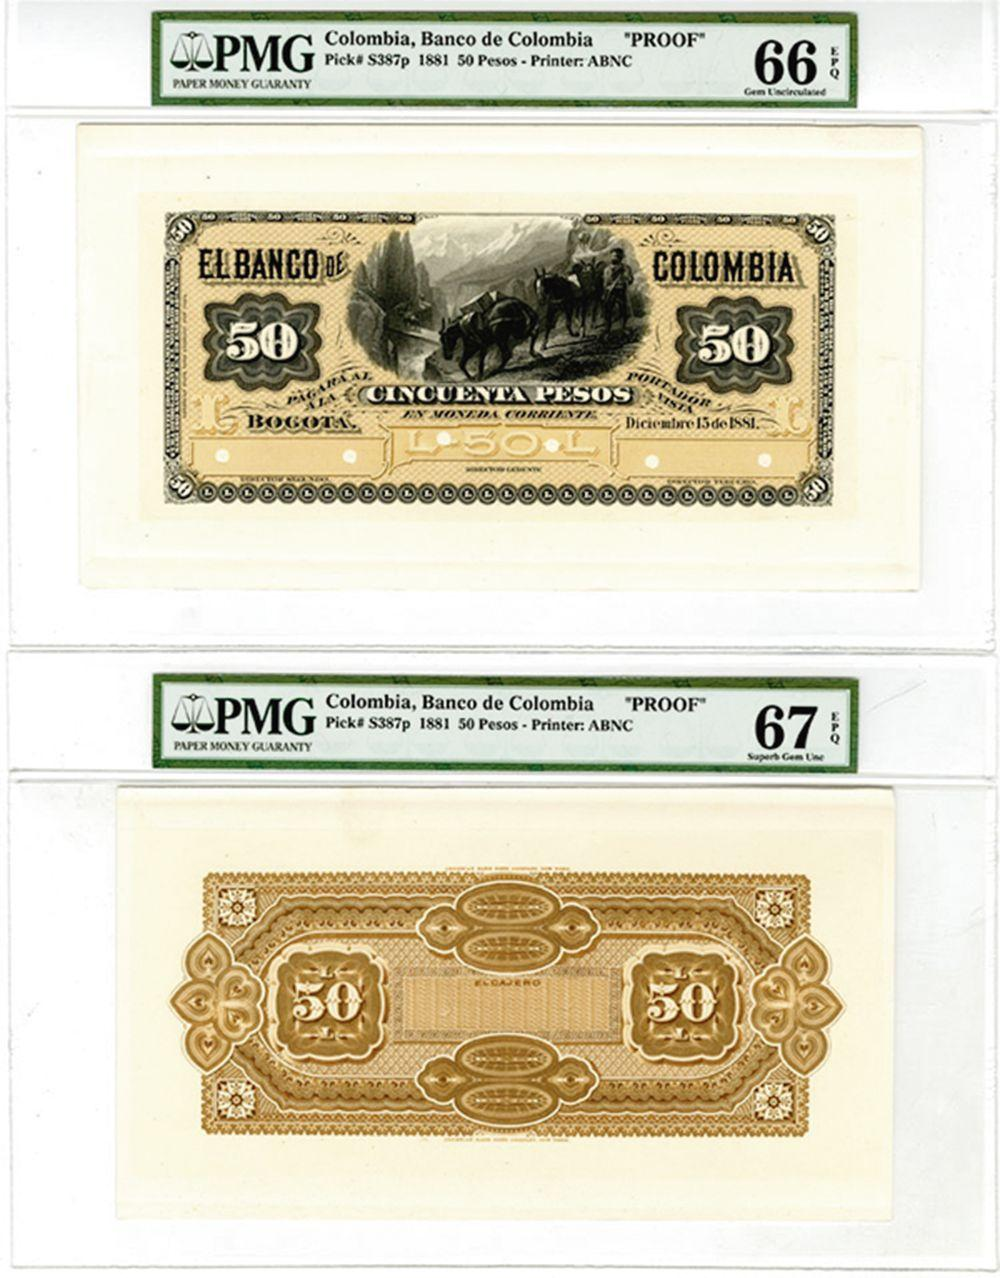 Banco De Colombia, 1881 Proof Face and Back Banknote.